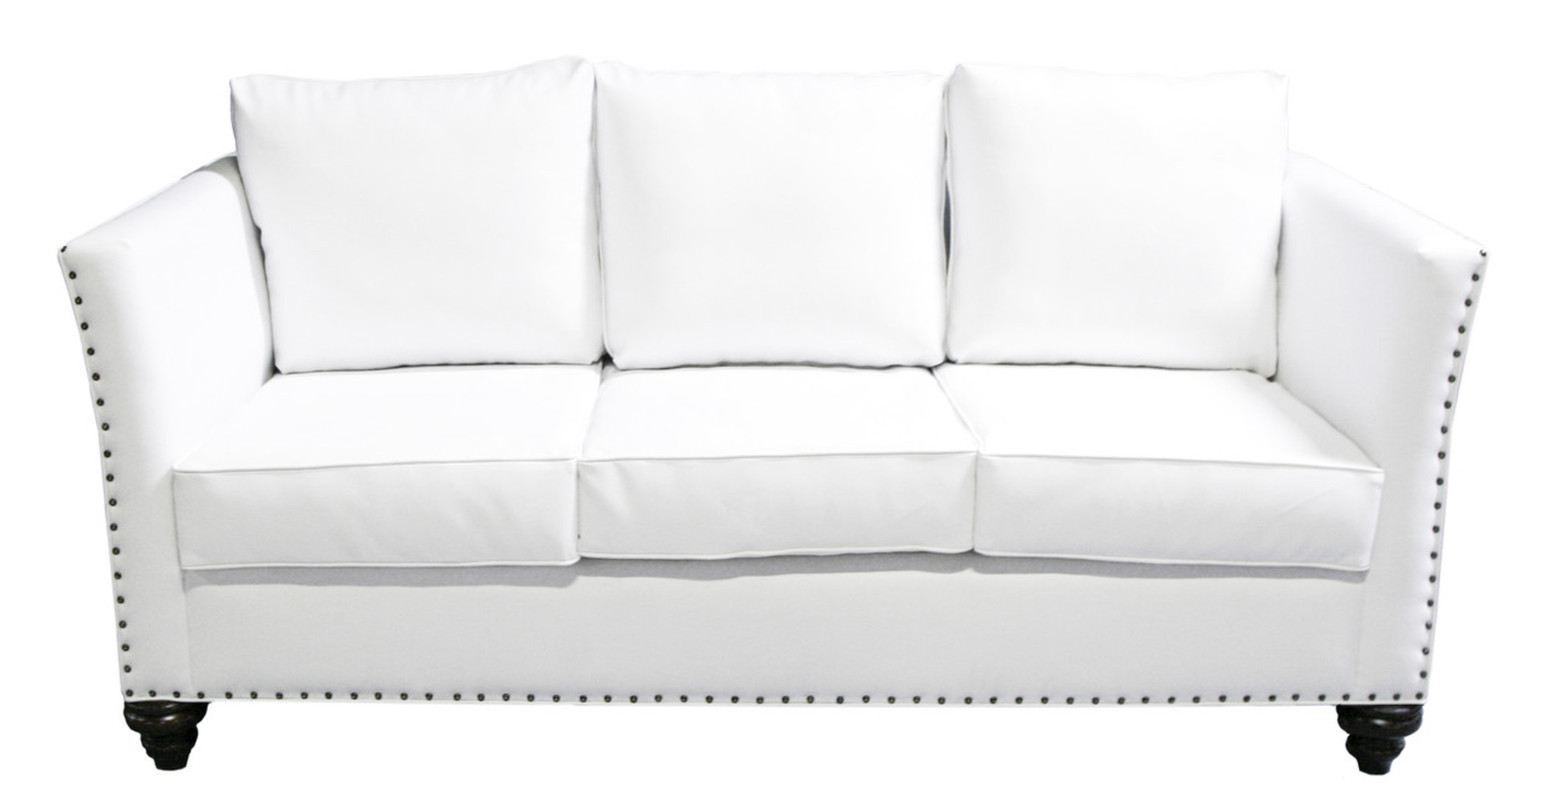 White Leather Sofa With Nailheads 1025theparty Com ~ Leather Sofa With Nailheads